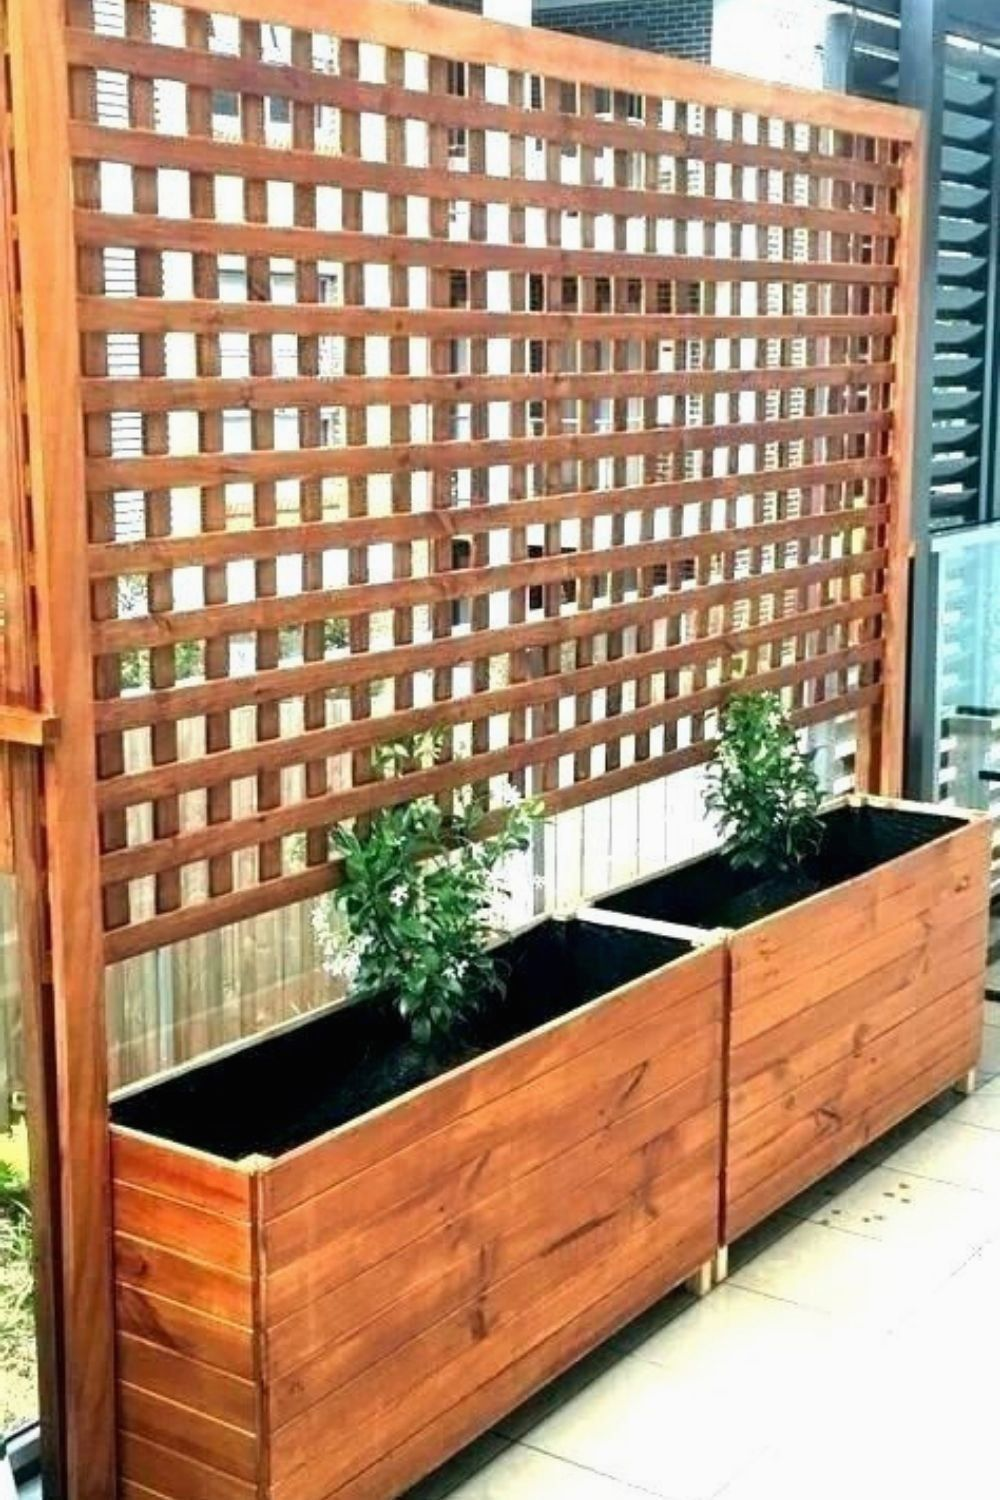 how to build garden trellis wisteria about home decor on inexpensive way to build a wood privacy fence diy guide for 2020 id=34973